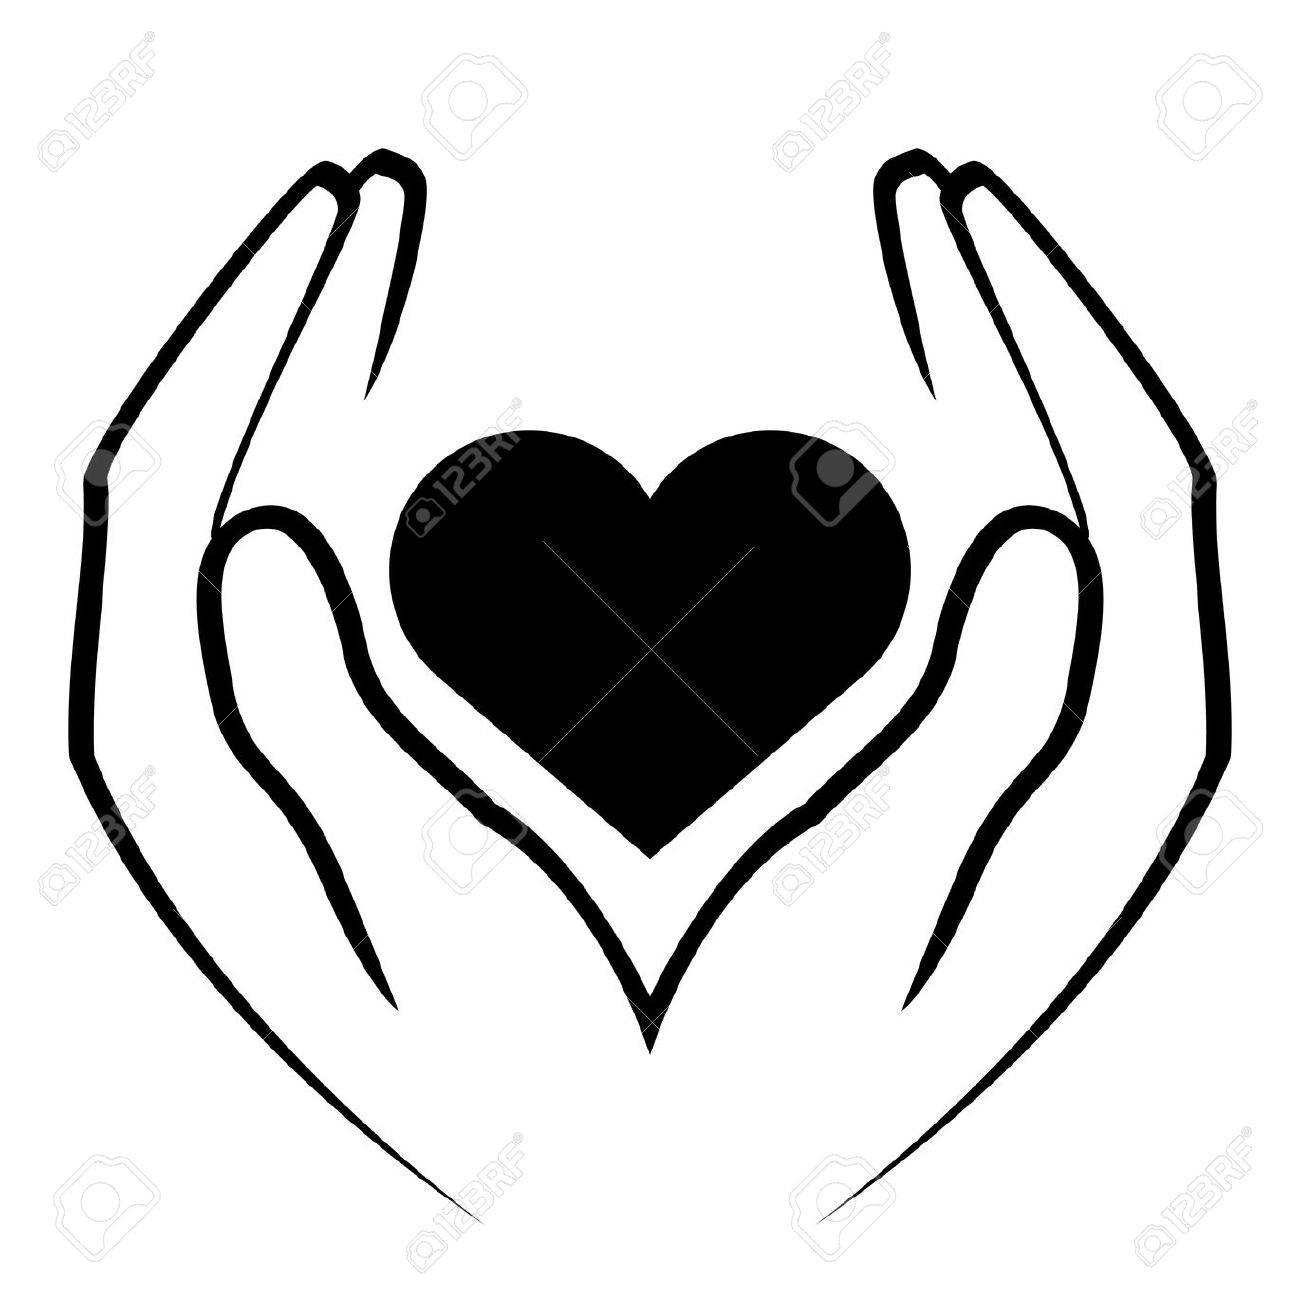 Healing clipart caring hand Things Heart Heart of Pinterest